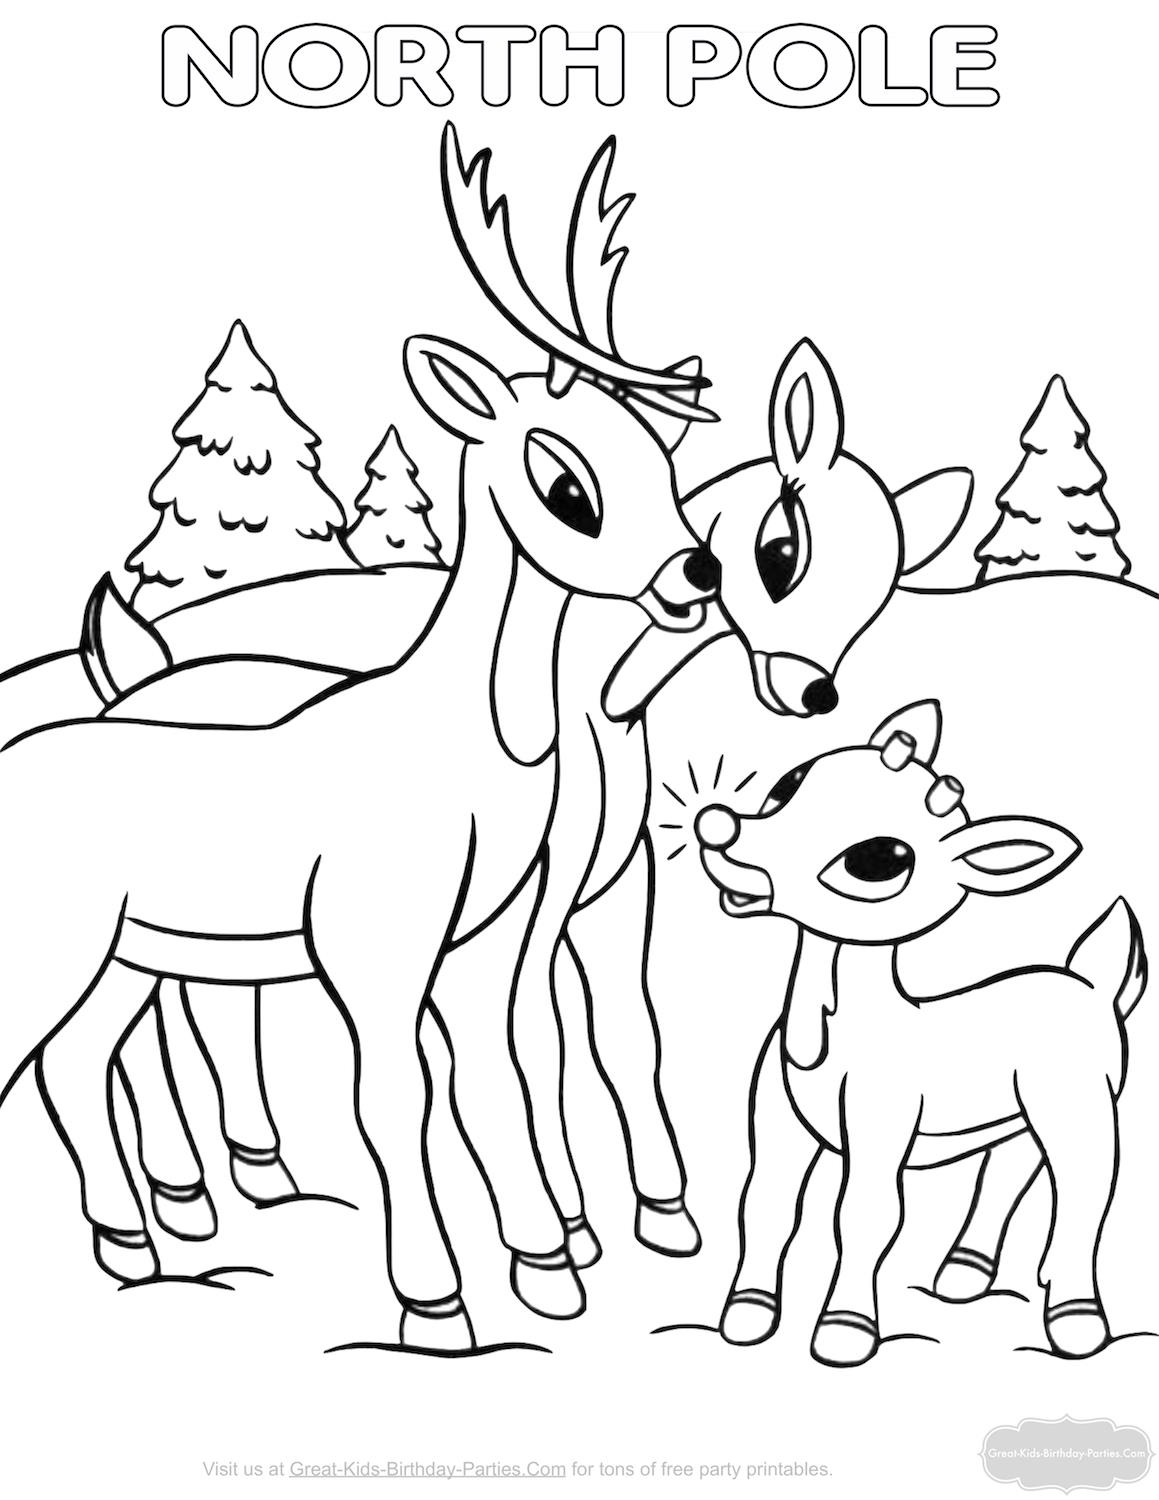 great kids birthday parties ; christmas-coloring-pages-5